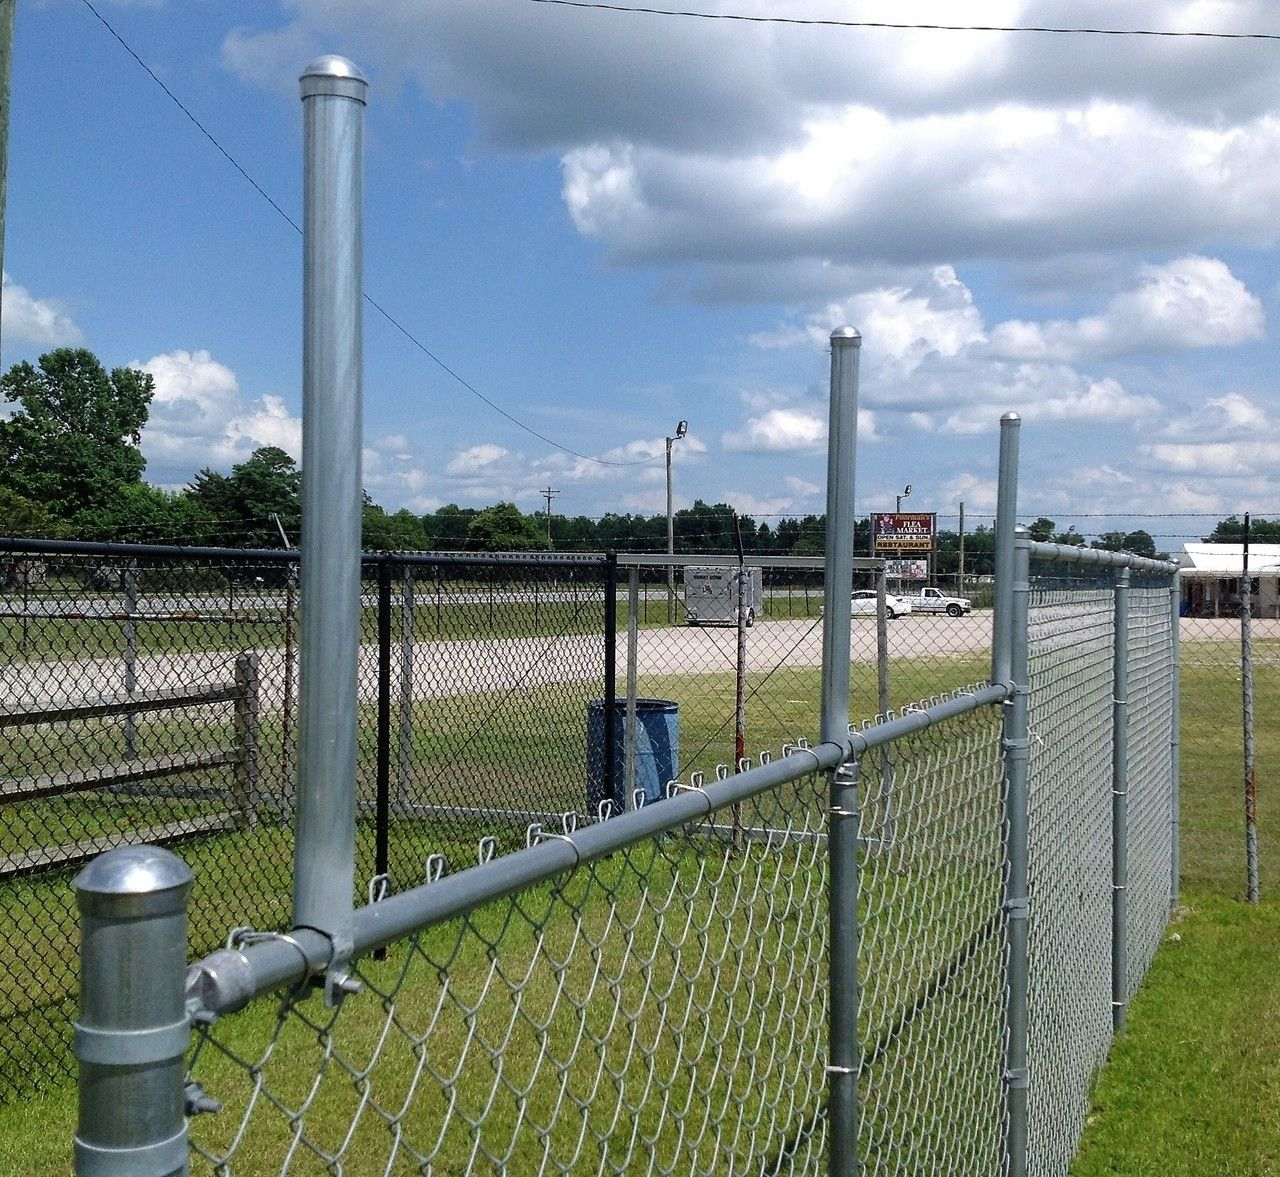 Extend A Post Extensions For Chain Link Fence Set Of 9 The Fence Department Inc Chain Link Fence Chain Link Fence Gate Fence Height Extension